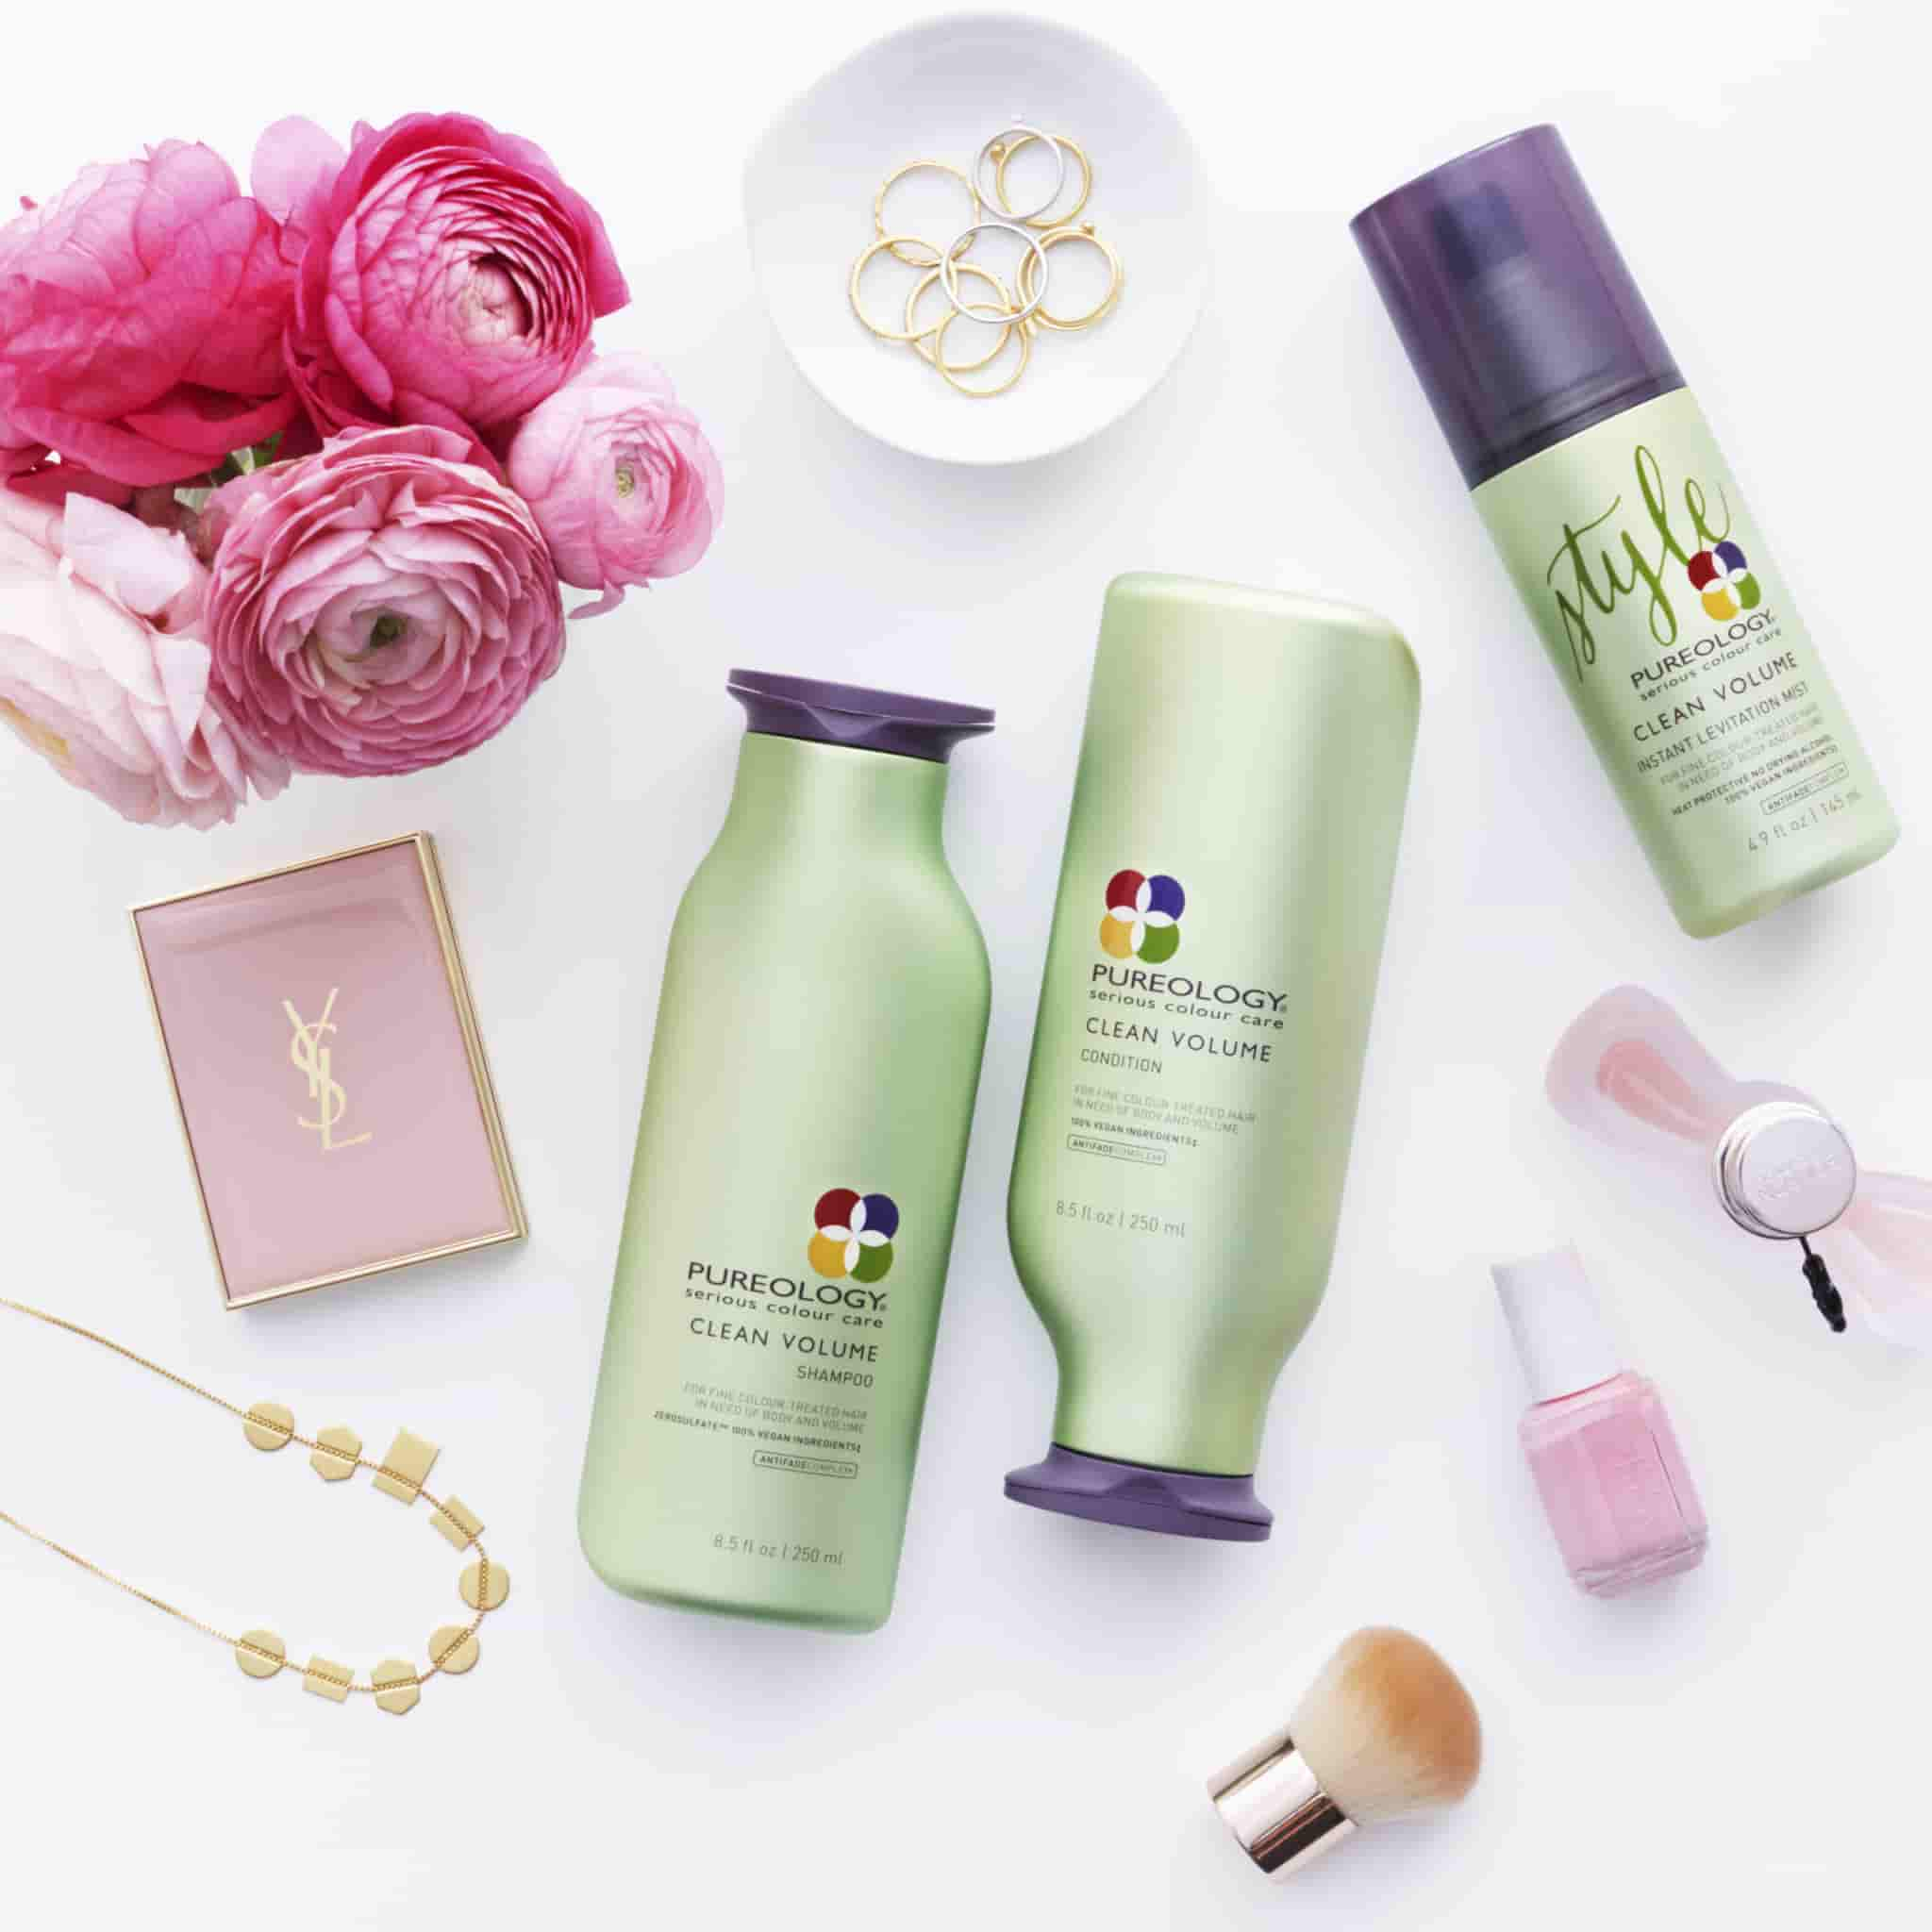 Pureology clean volume shampoo conditioner